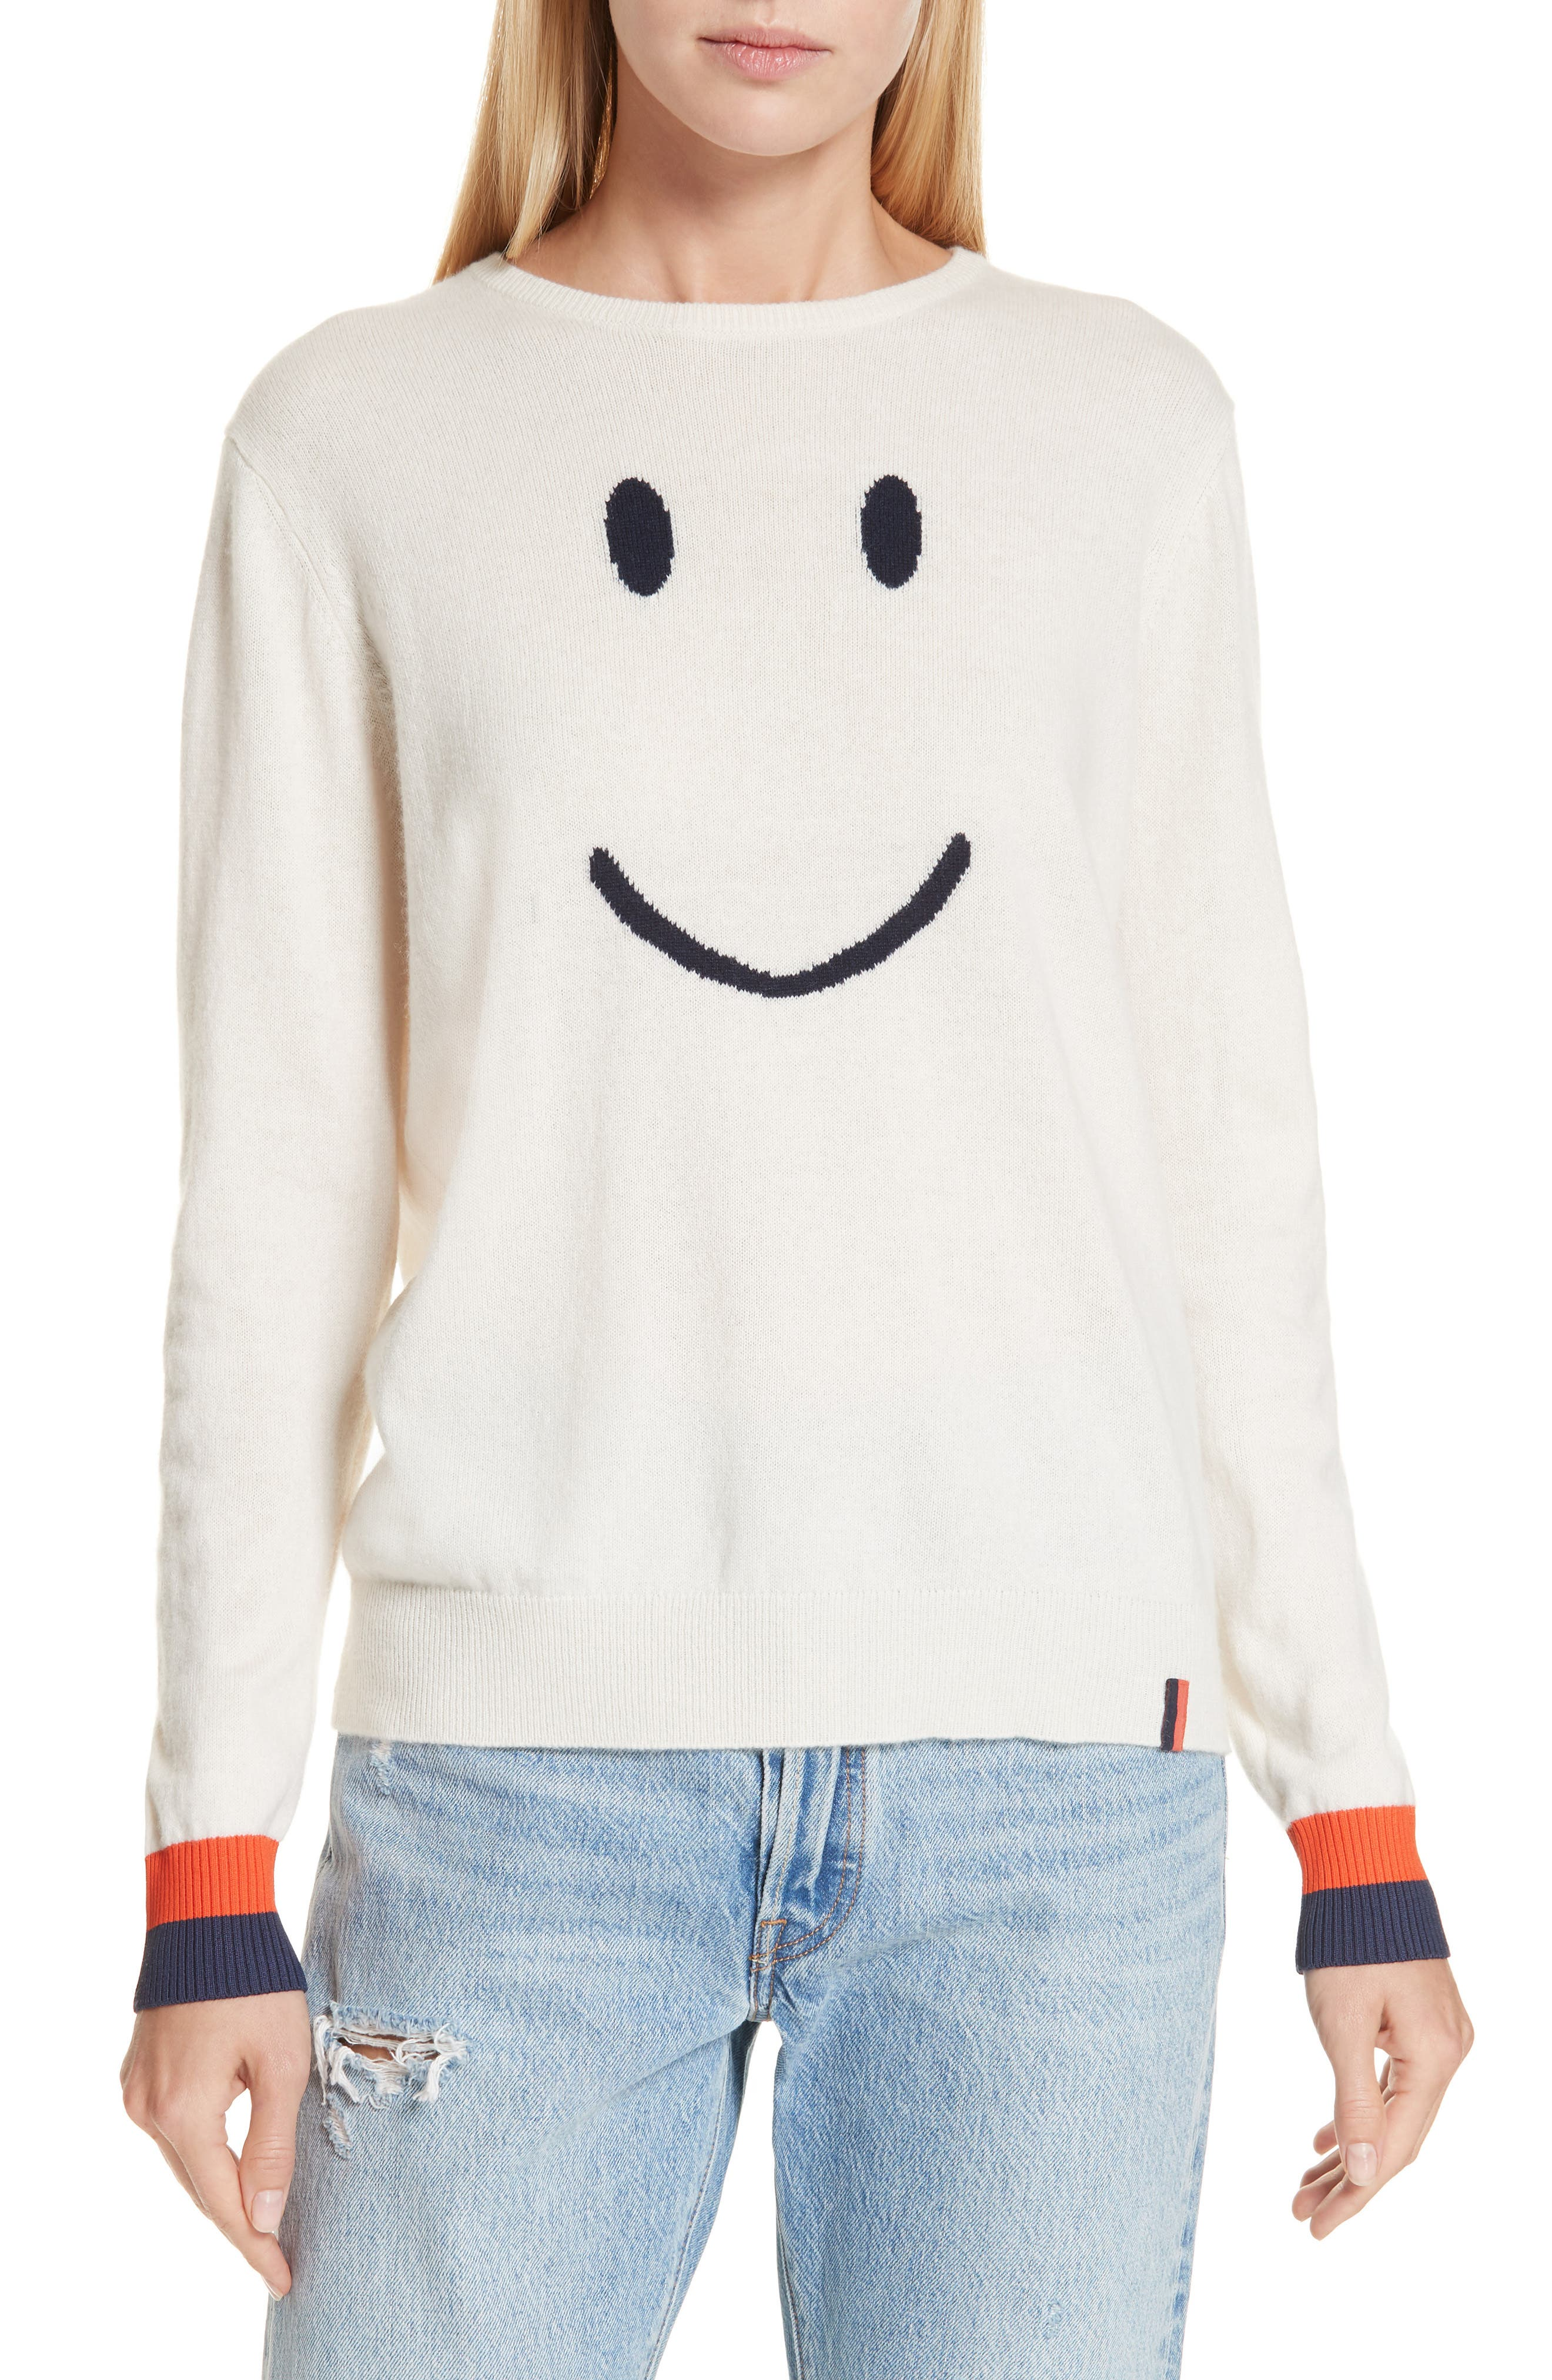 KULE The Smile Cashmere Blend Sweater in Cream